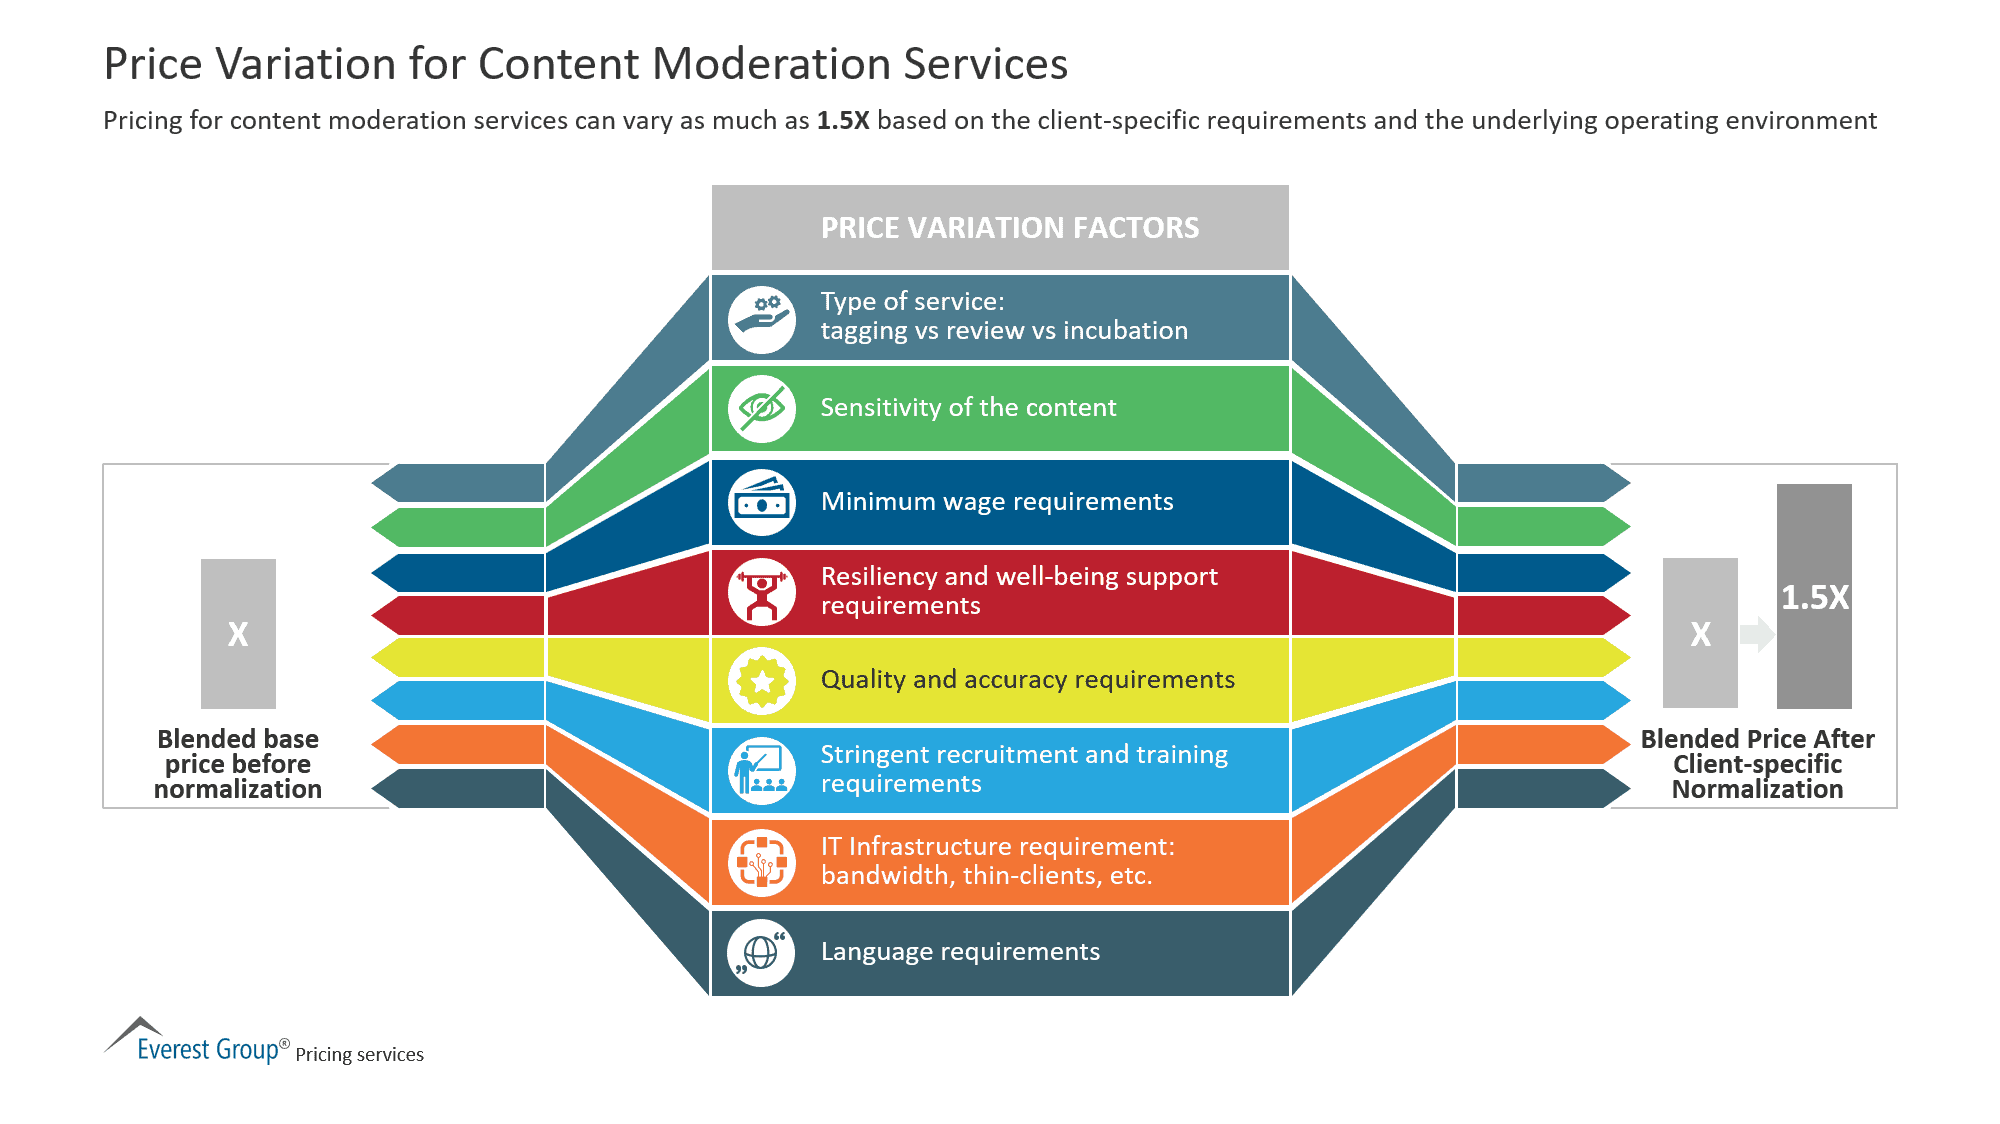 Price Variation for Content Moderation Services